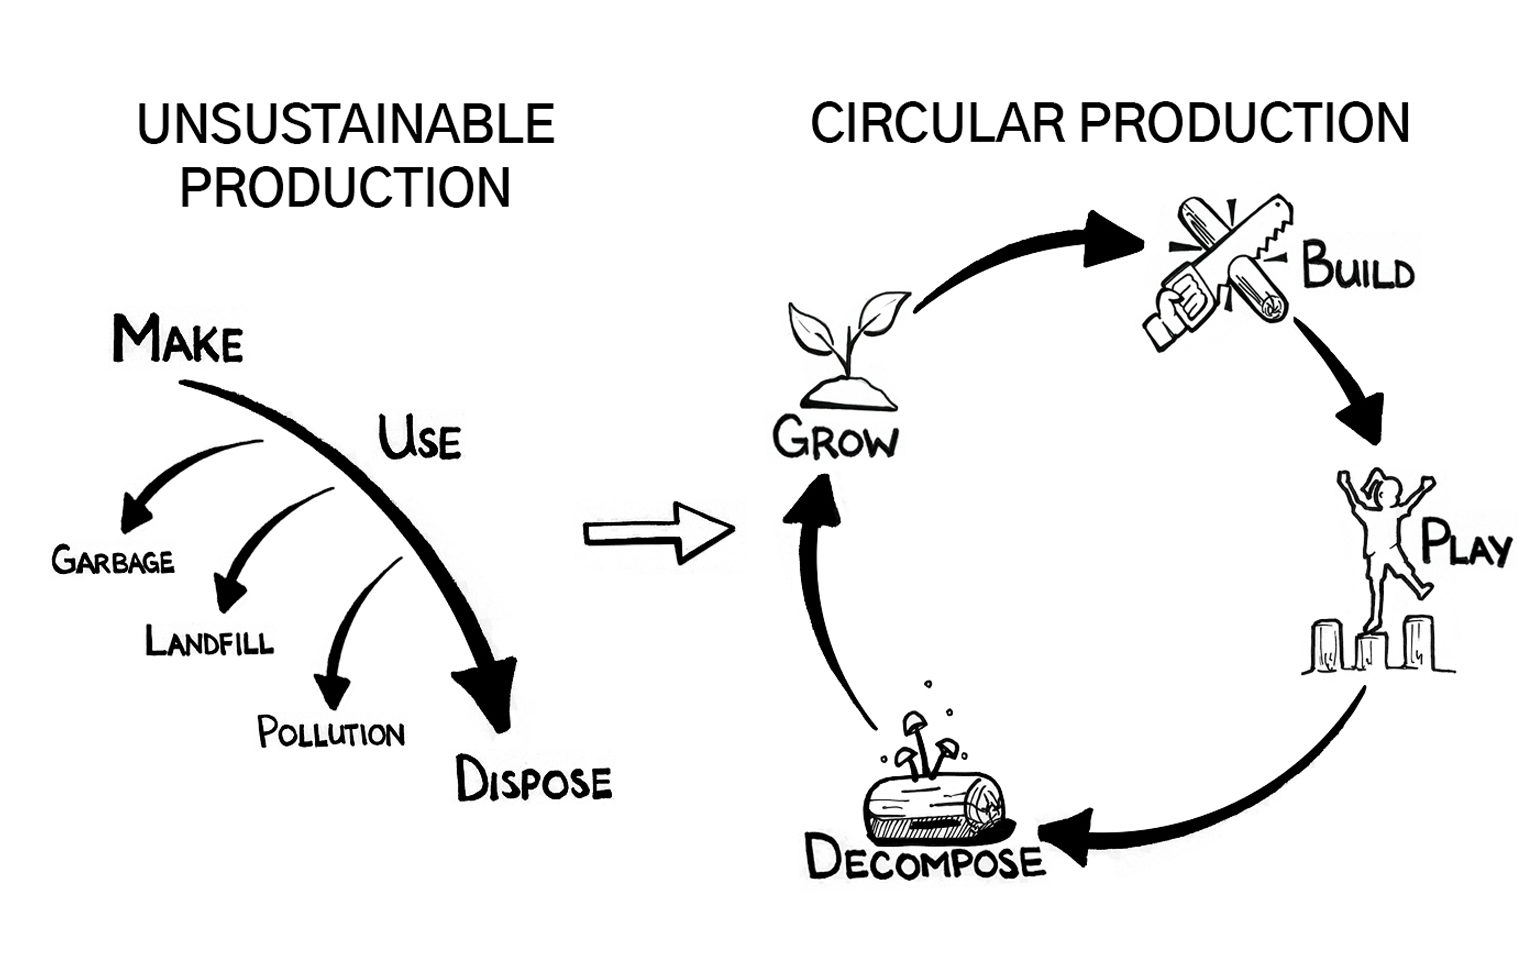 Unsustainable Production: Make, Use, Dispose, Pollute. Circular Production: Make, Use, Reuse, Remake, Recycle, Make